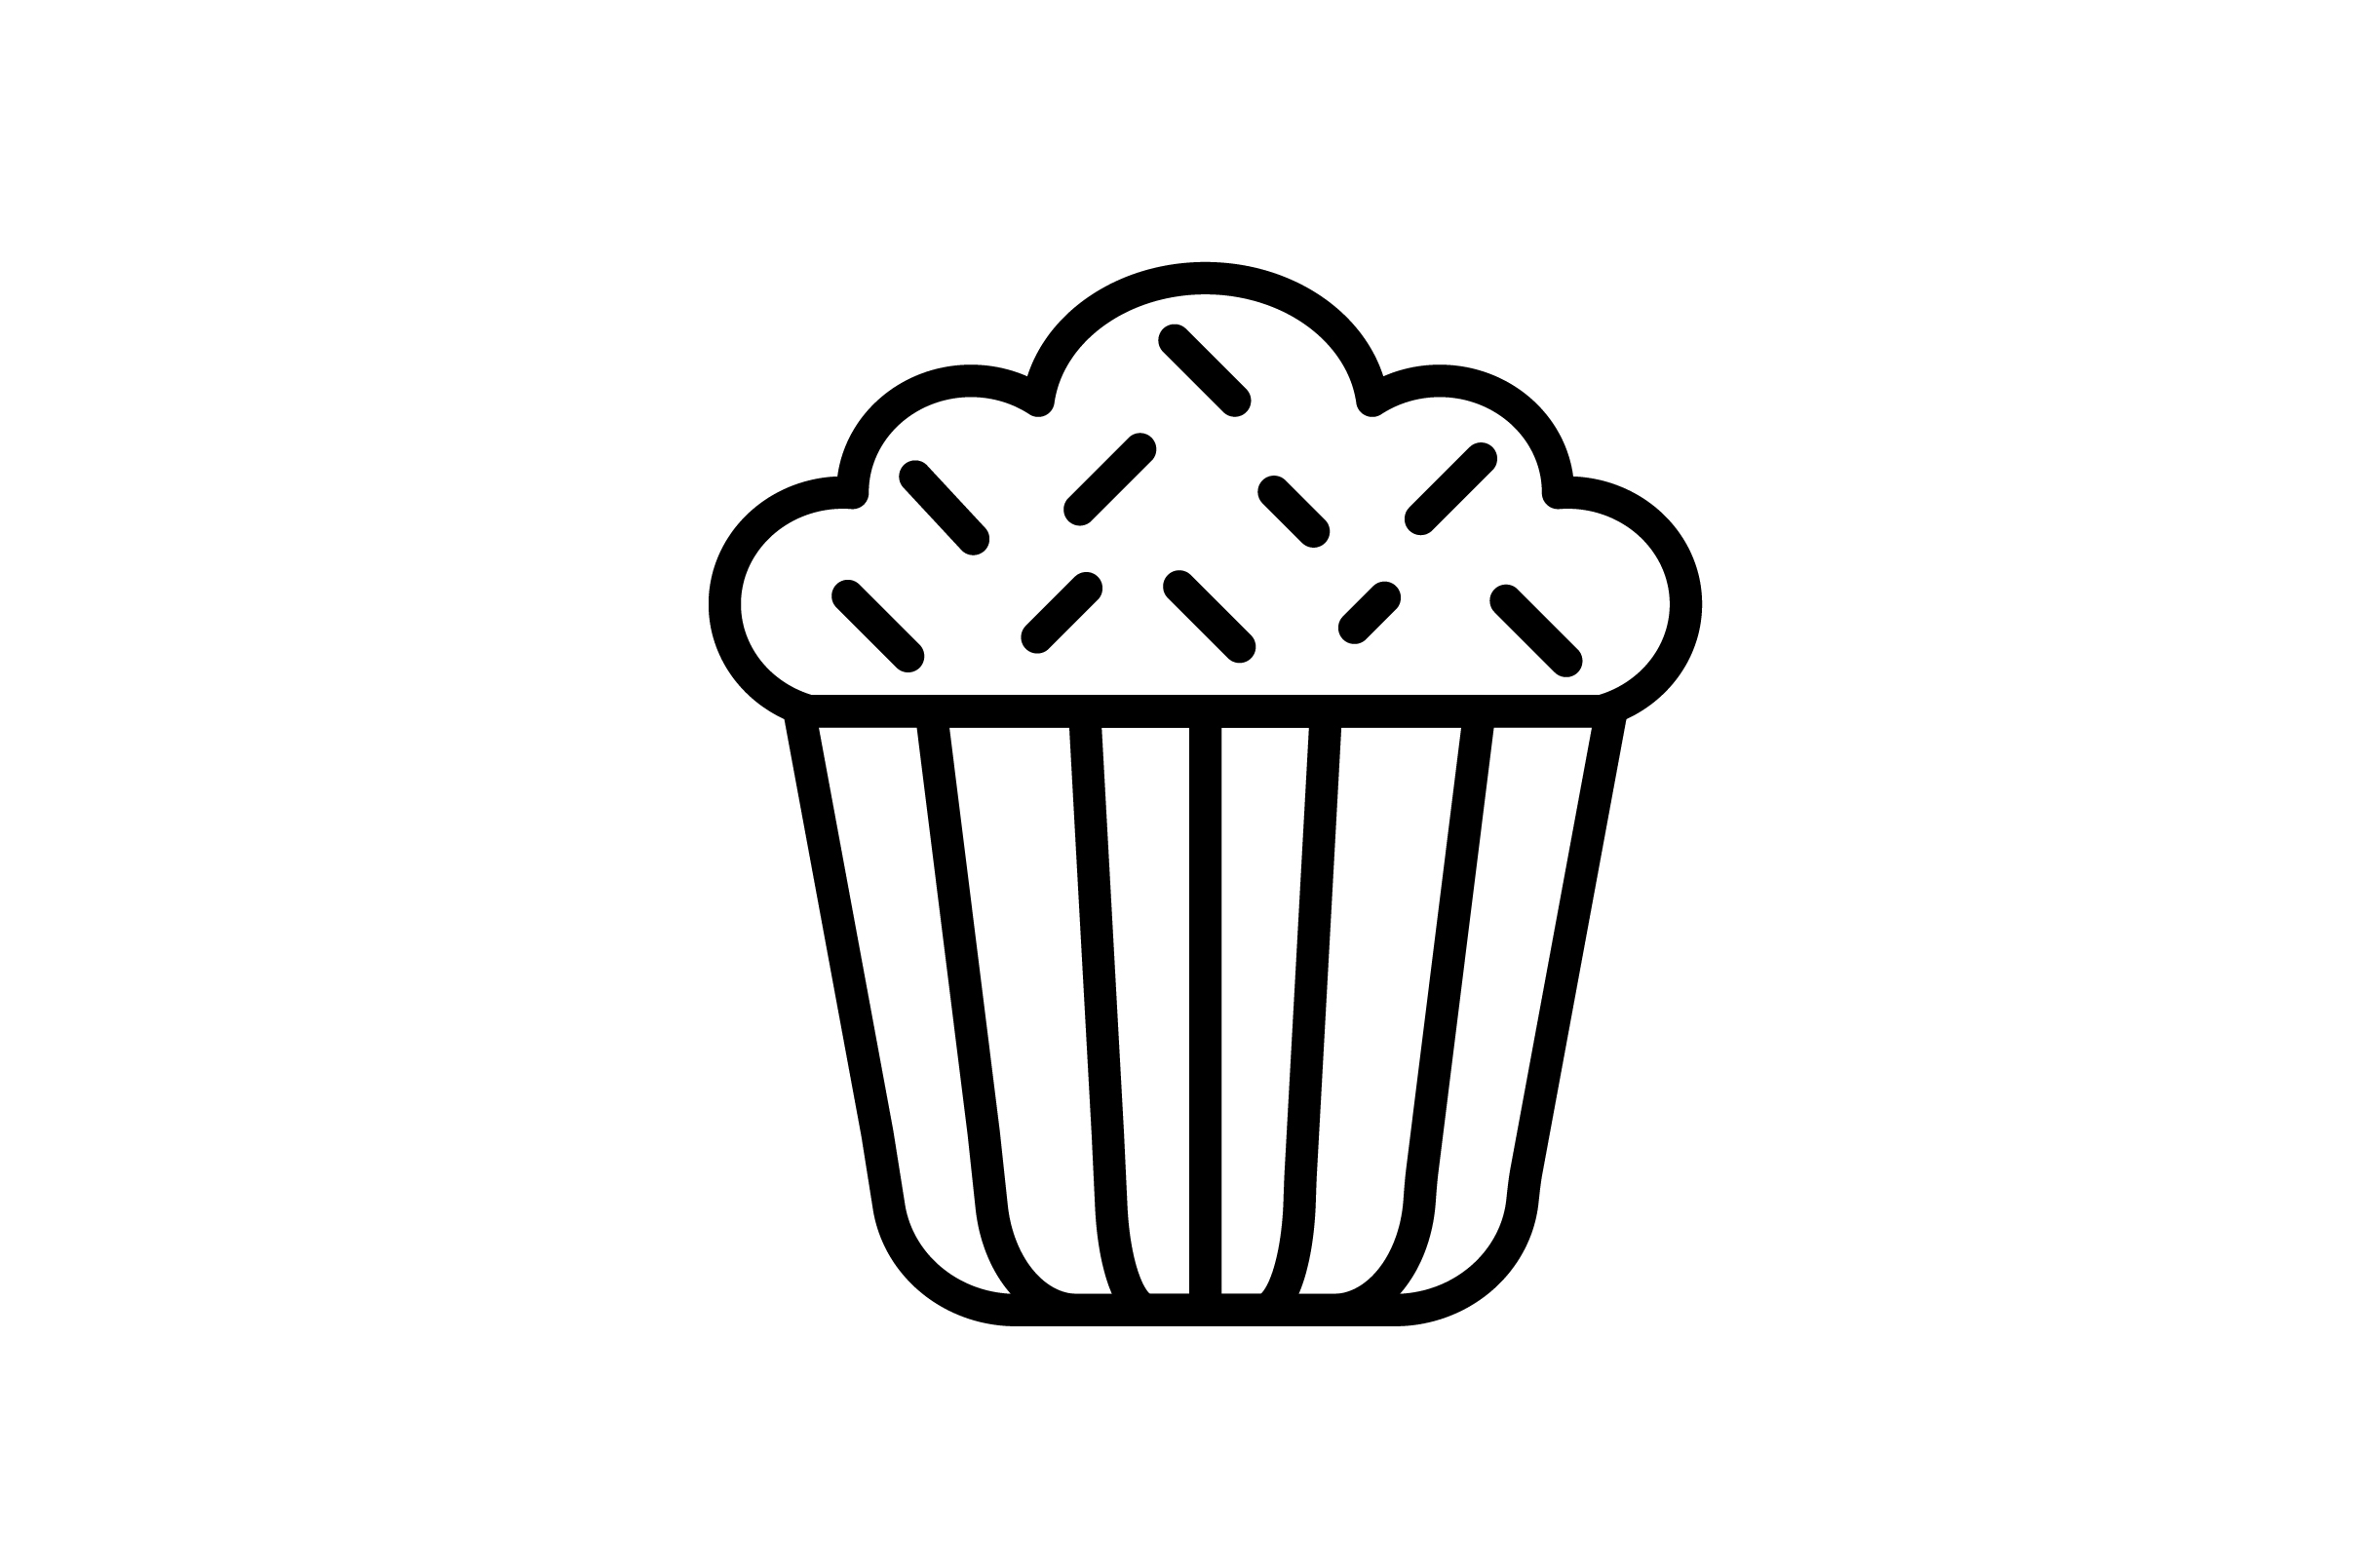 Download Free Cake Icon Graphic By Arus Creative Fabrica for Cricut Explore, Silhouette and other cutting machines.